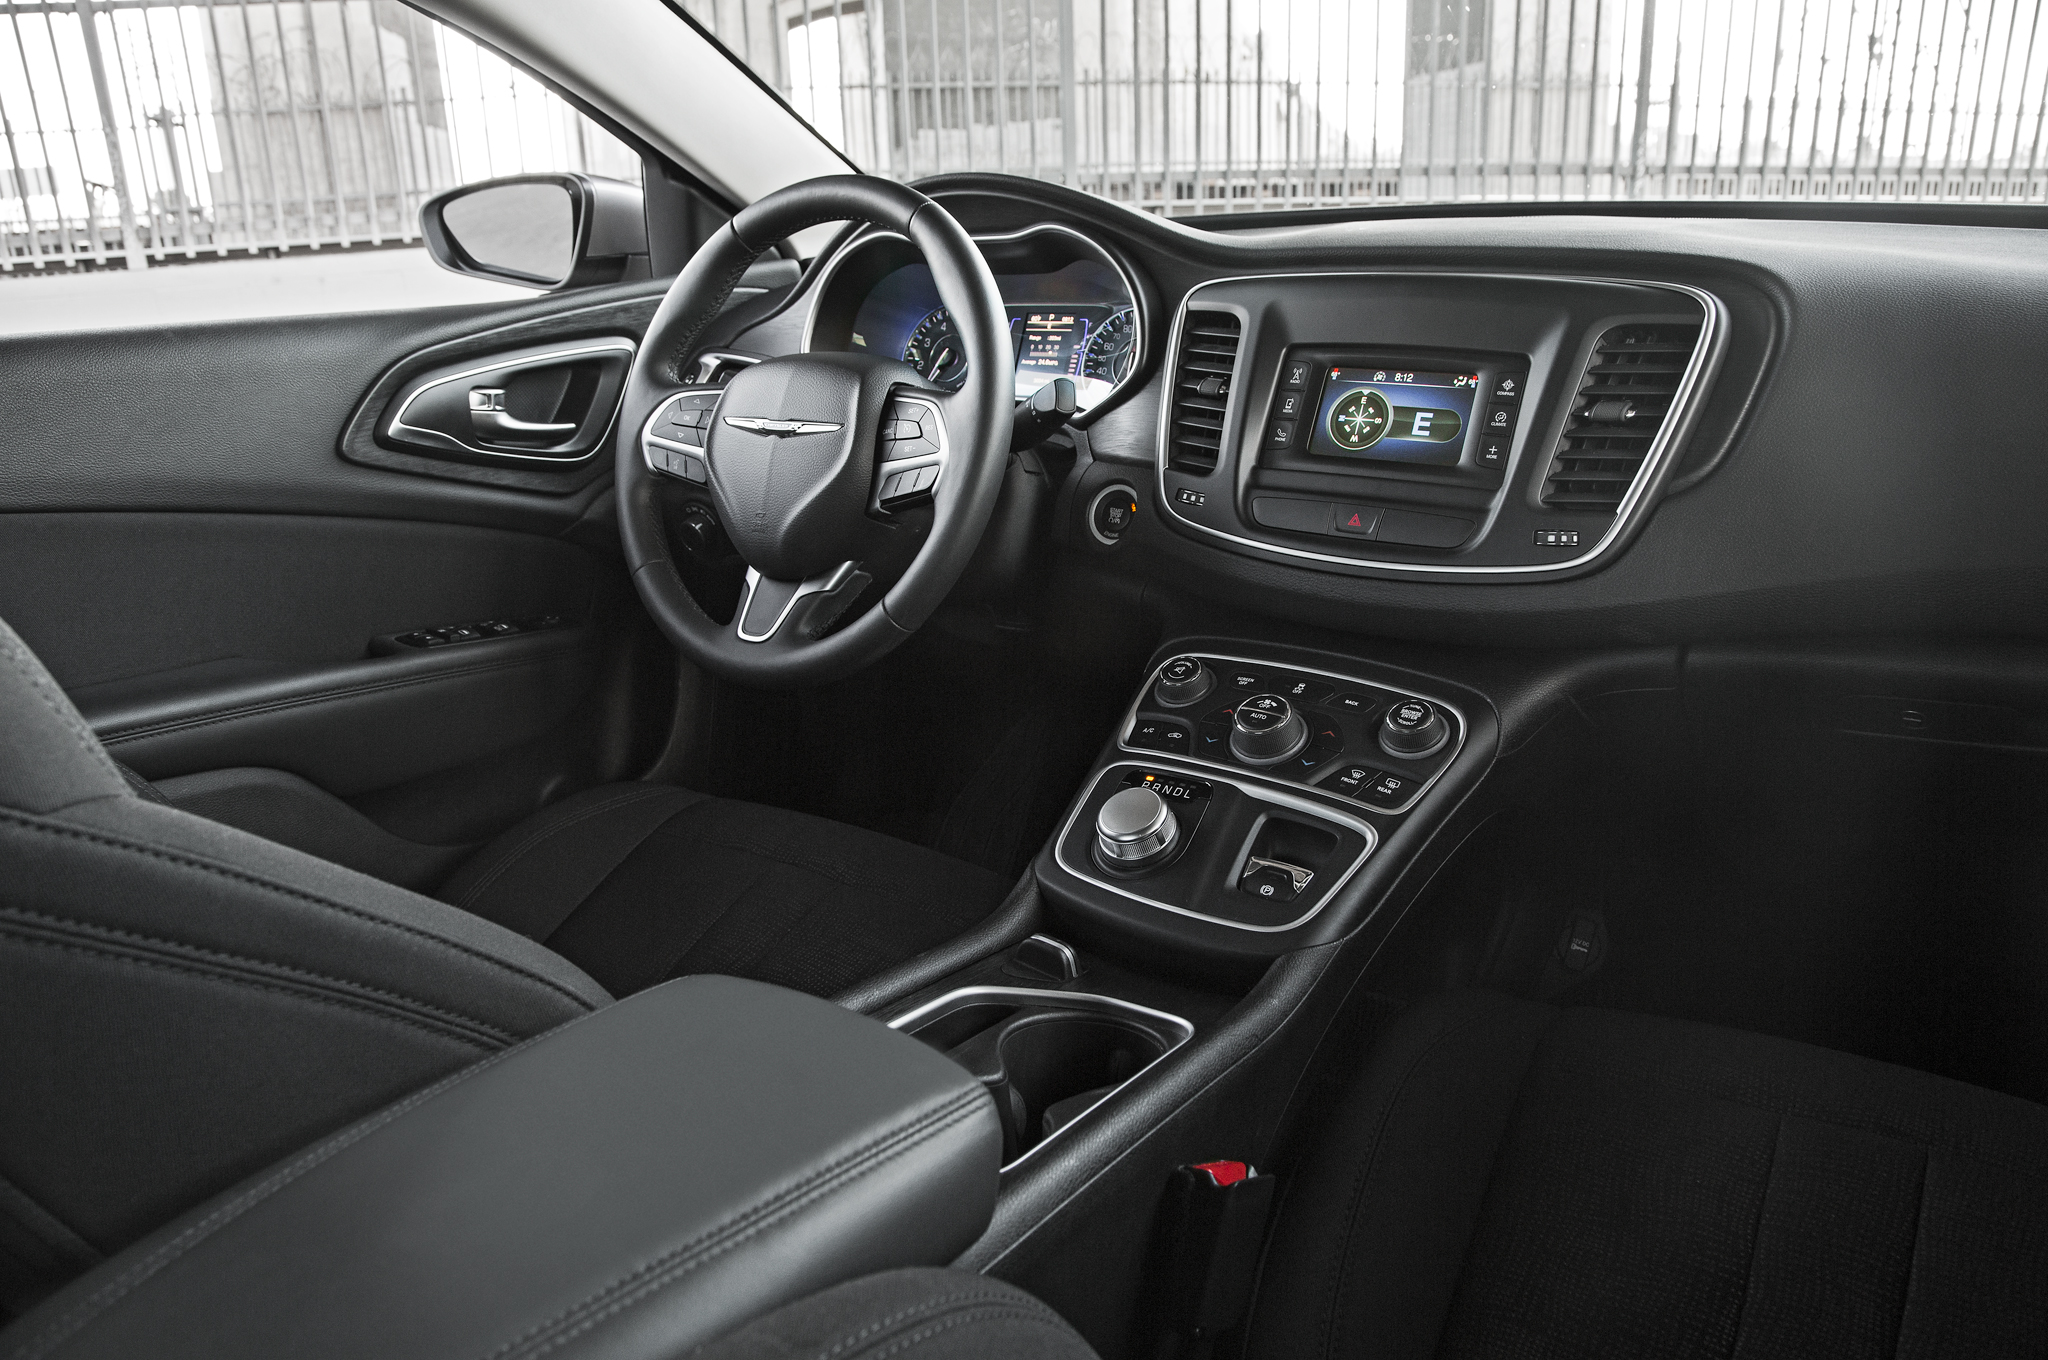 2015 Chrysler 200 Dashboard And Cockpit (Photo 5 of 11)